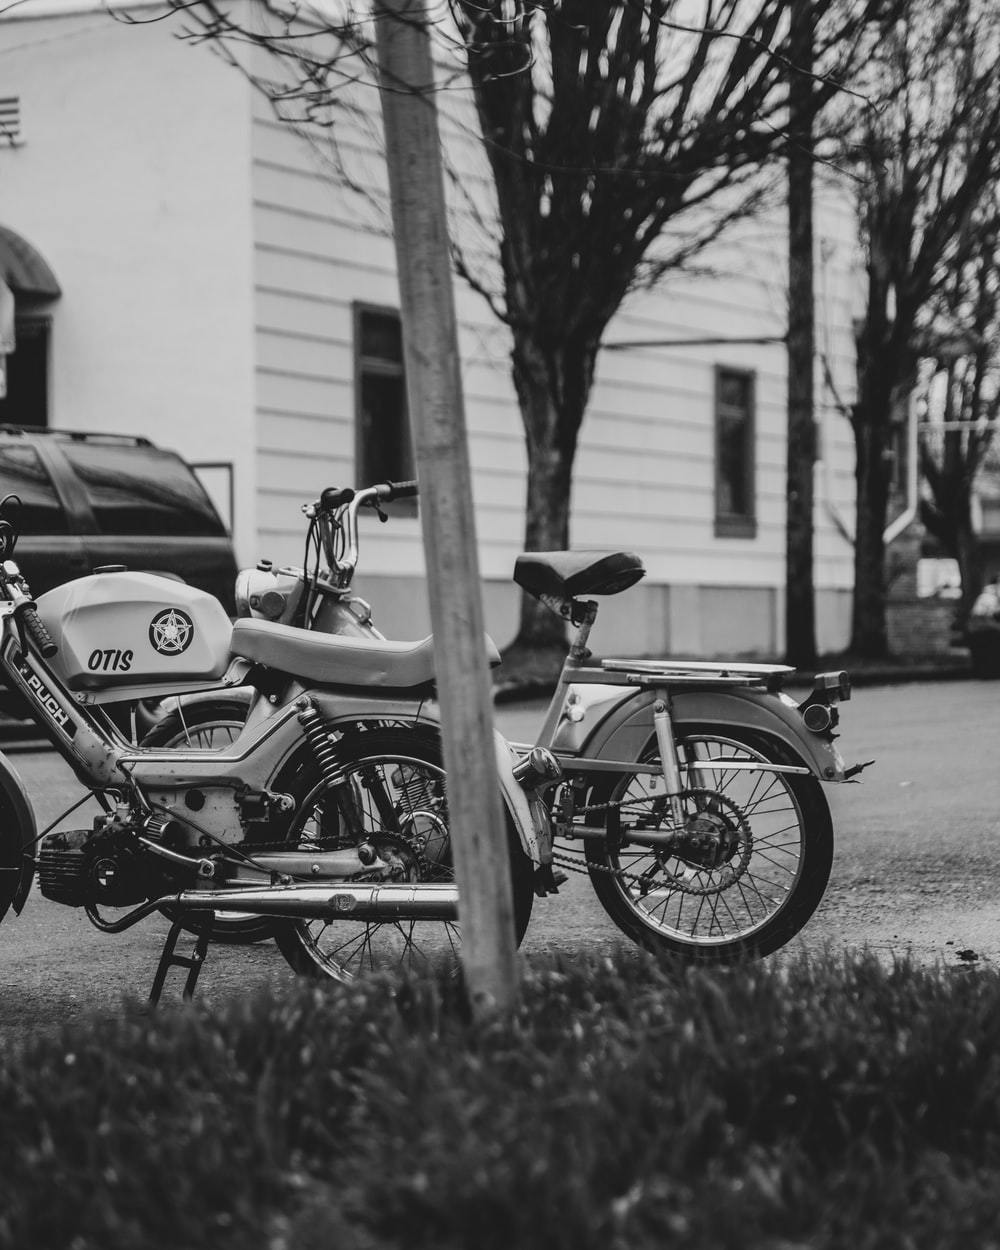 grayscale photo of motorcycle parked beside road